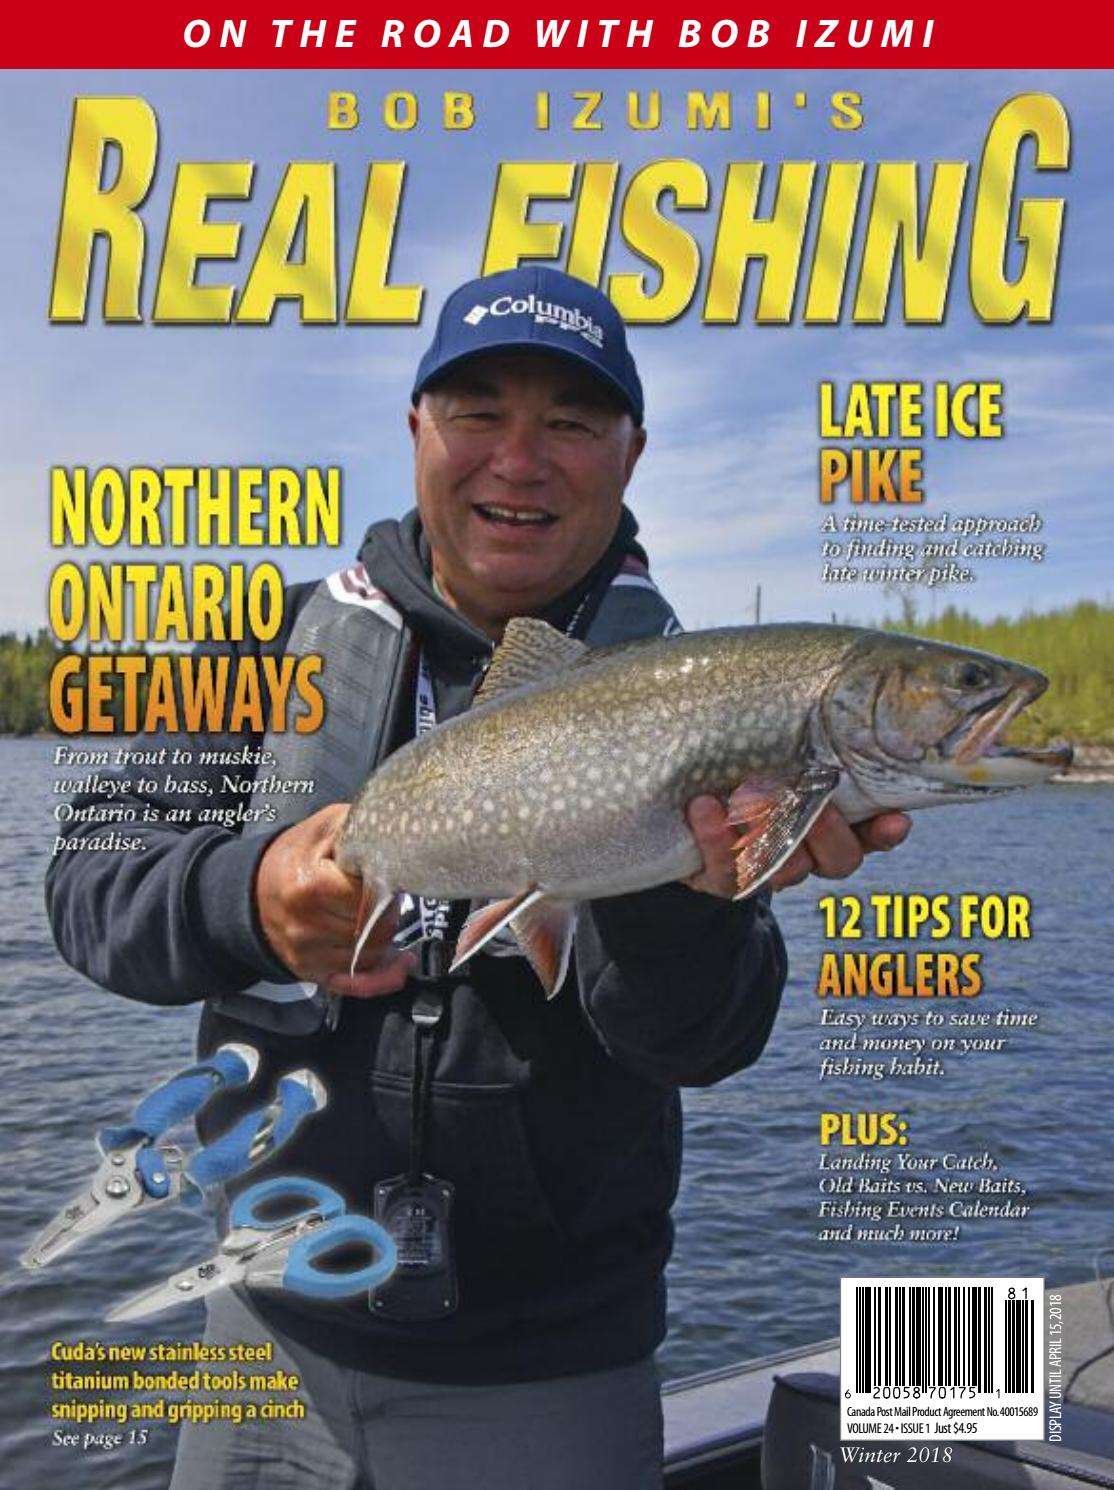 Balancing pike: description and reviews. Winter fishing on the rocker